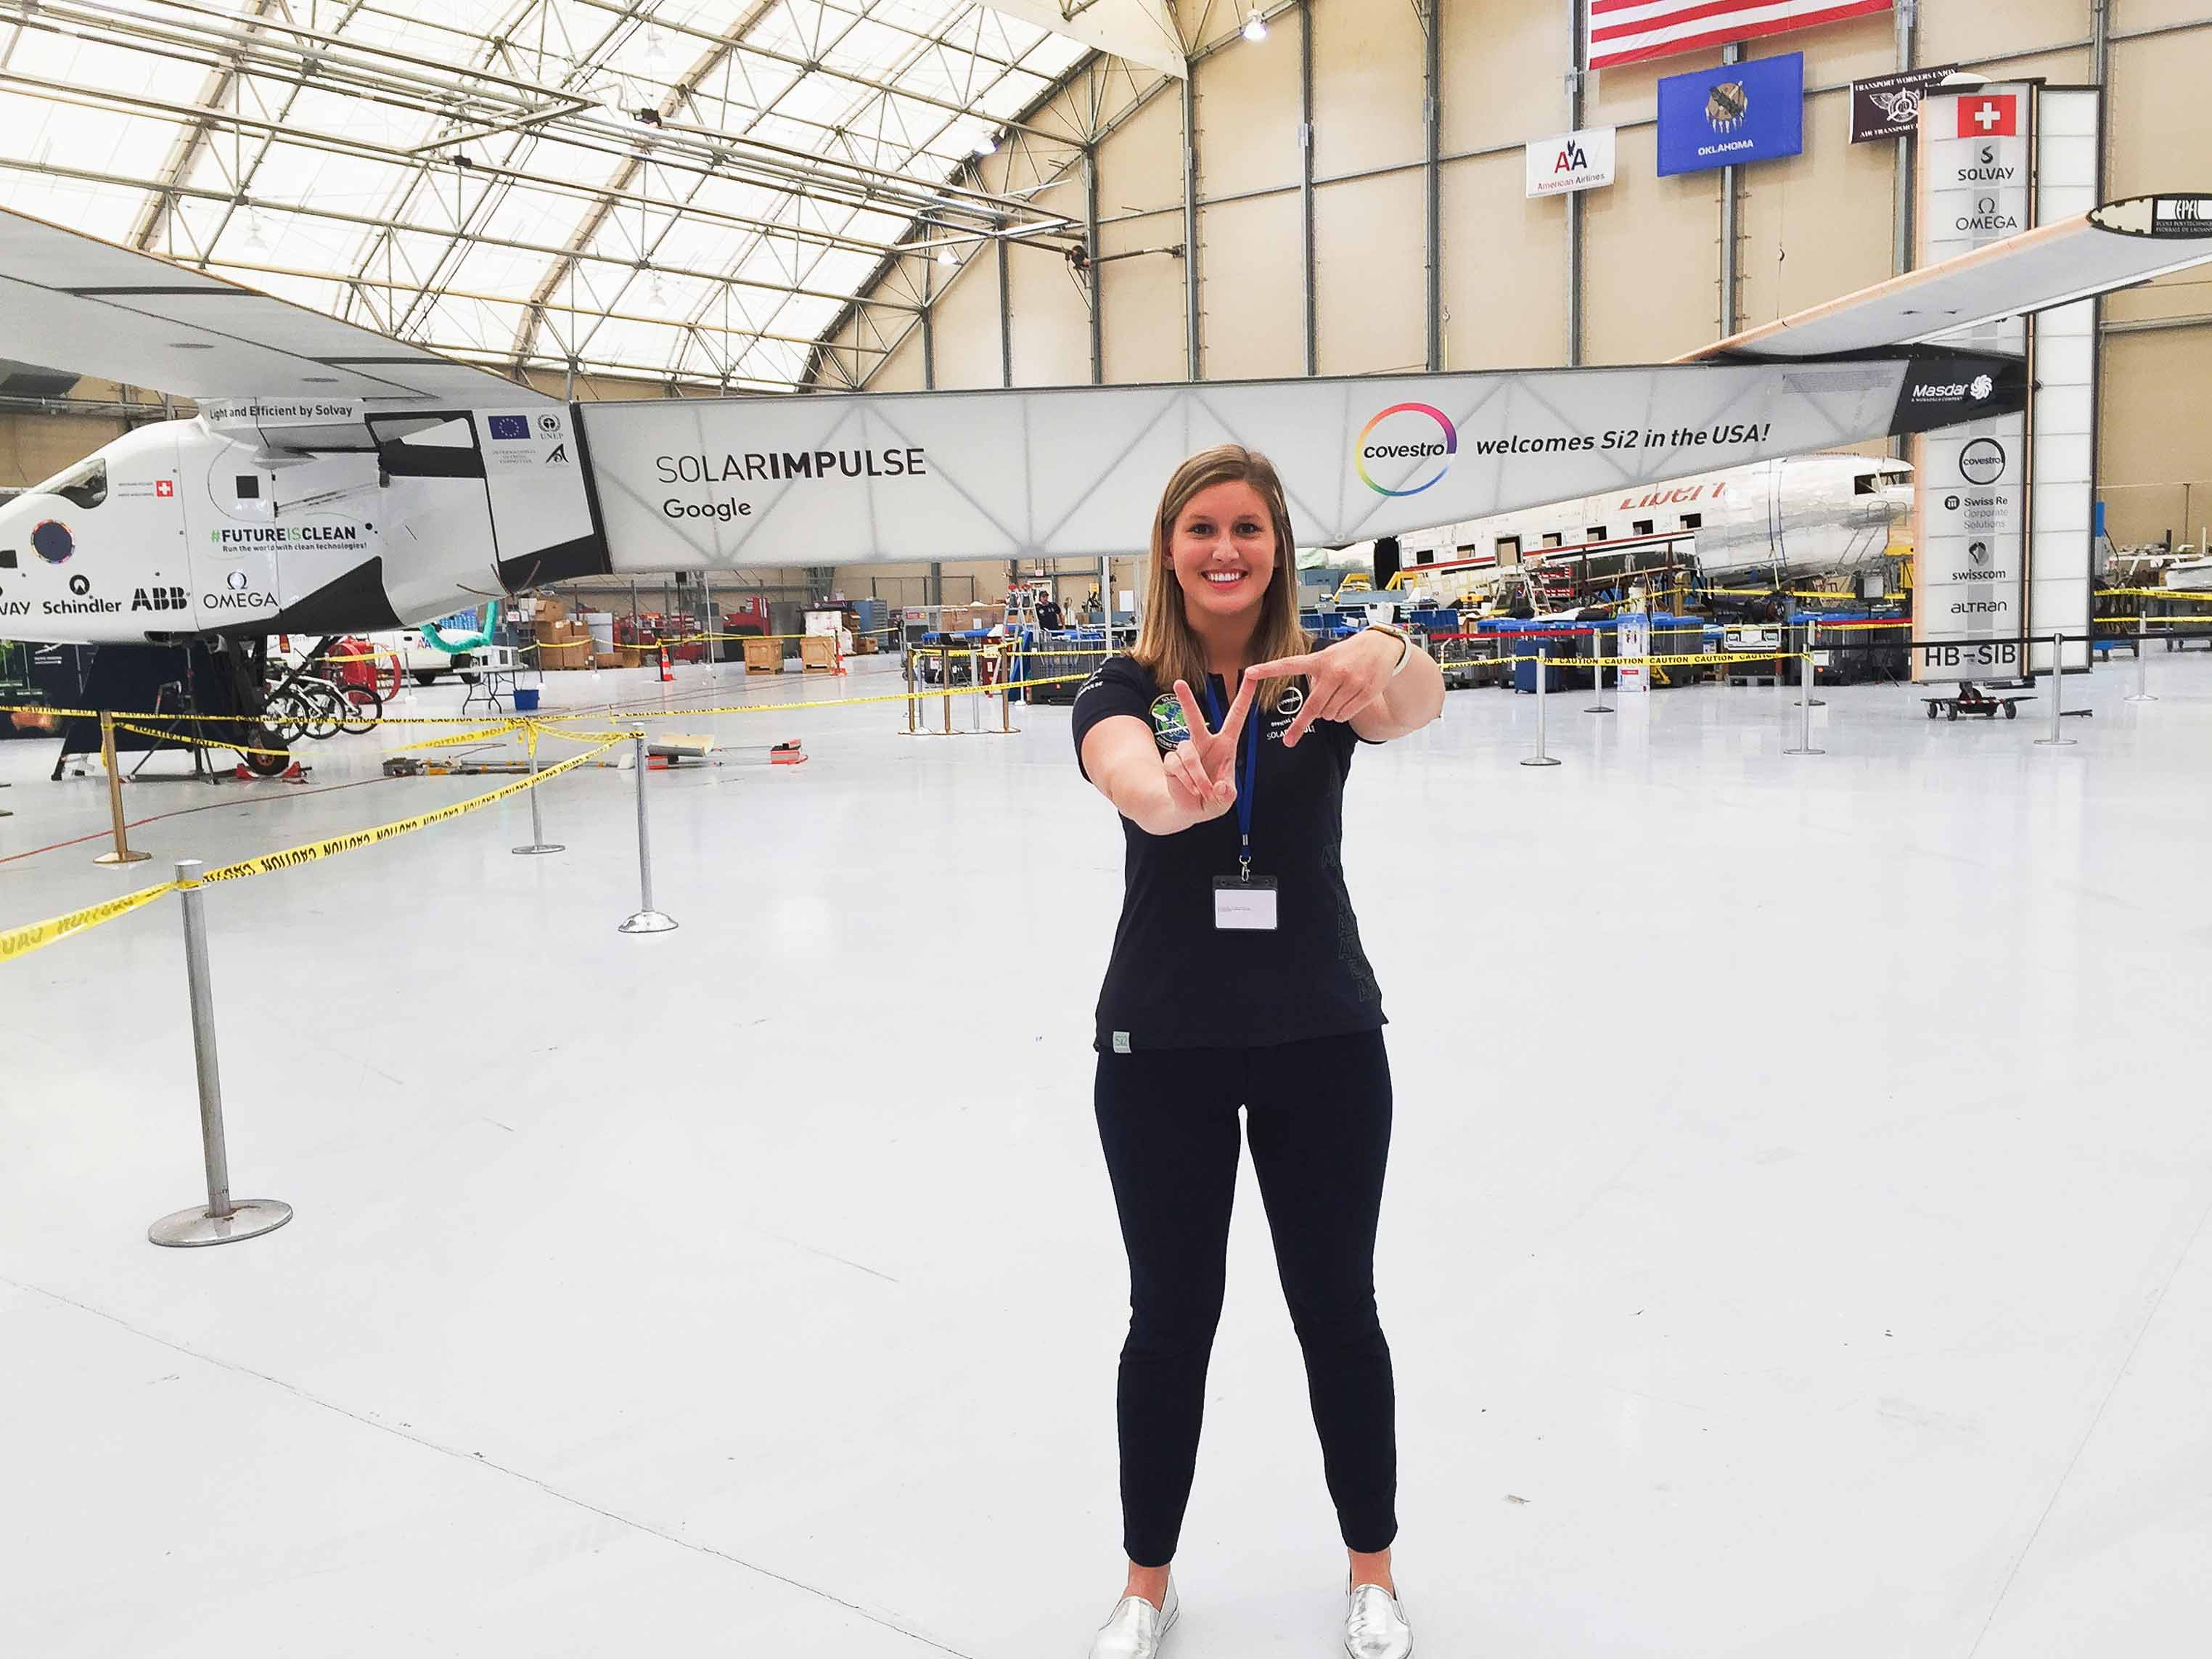 Paige Kassalen making the VT hand sign with her fingers in a hanger in front of the Google Solar Impulse plane.